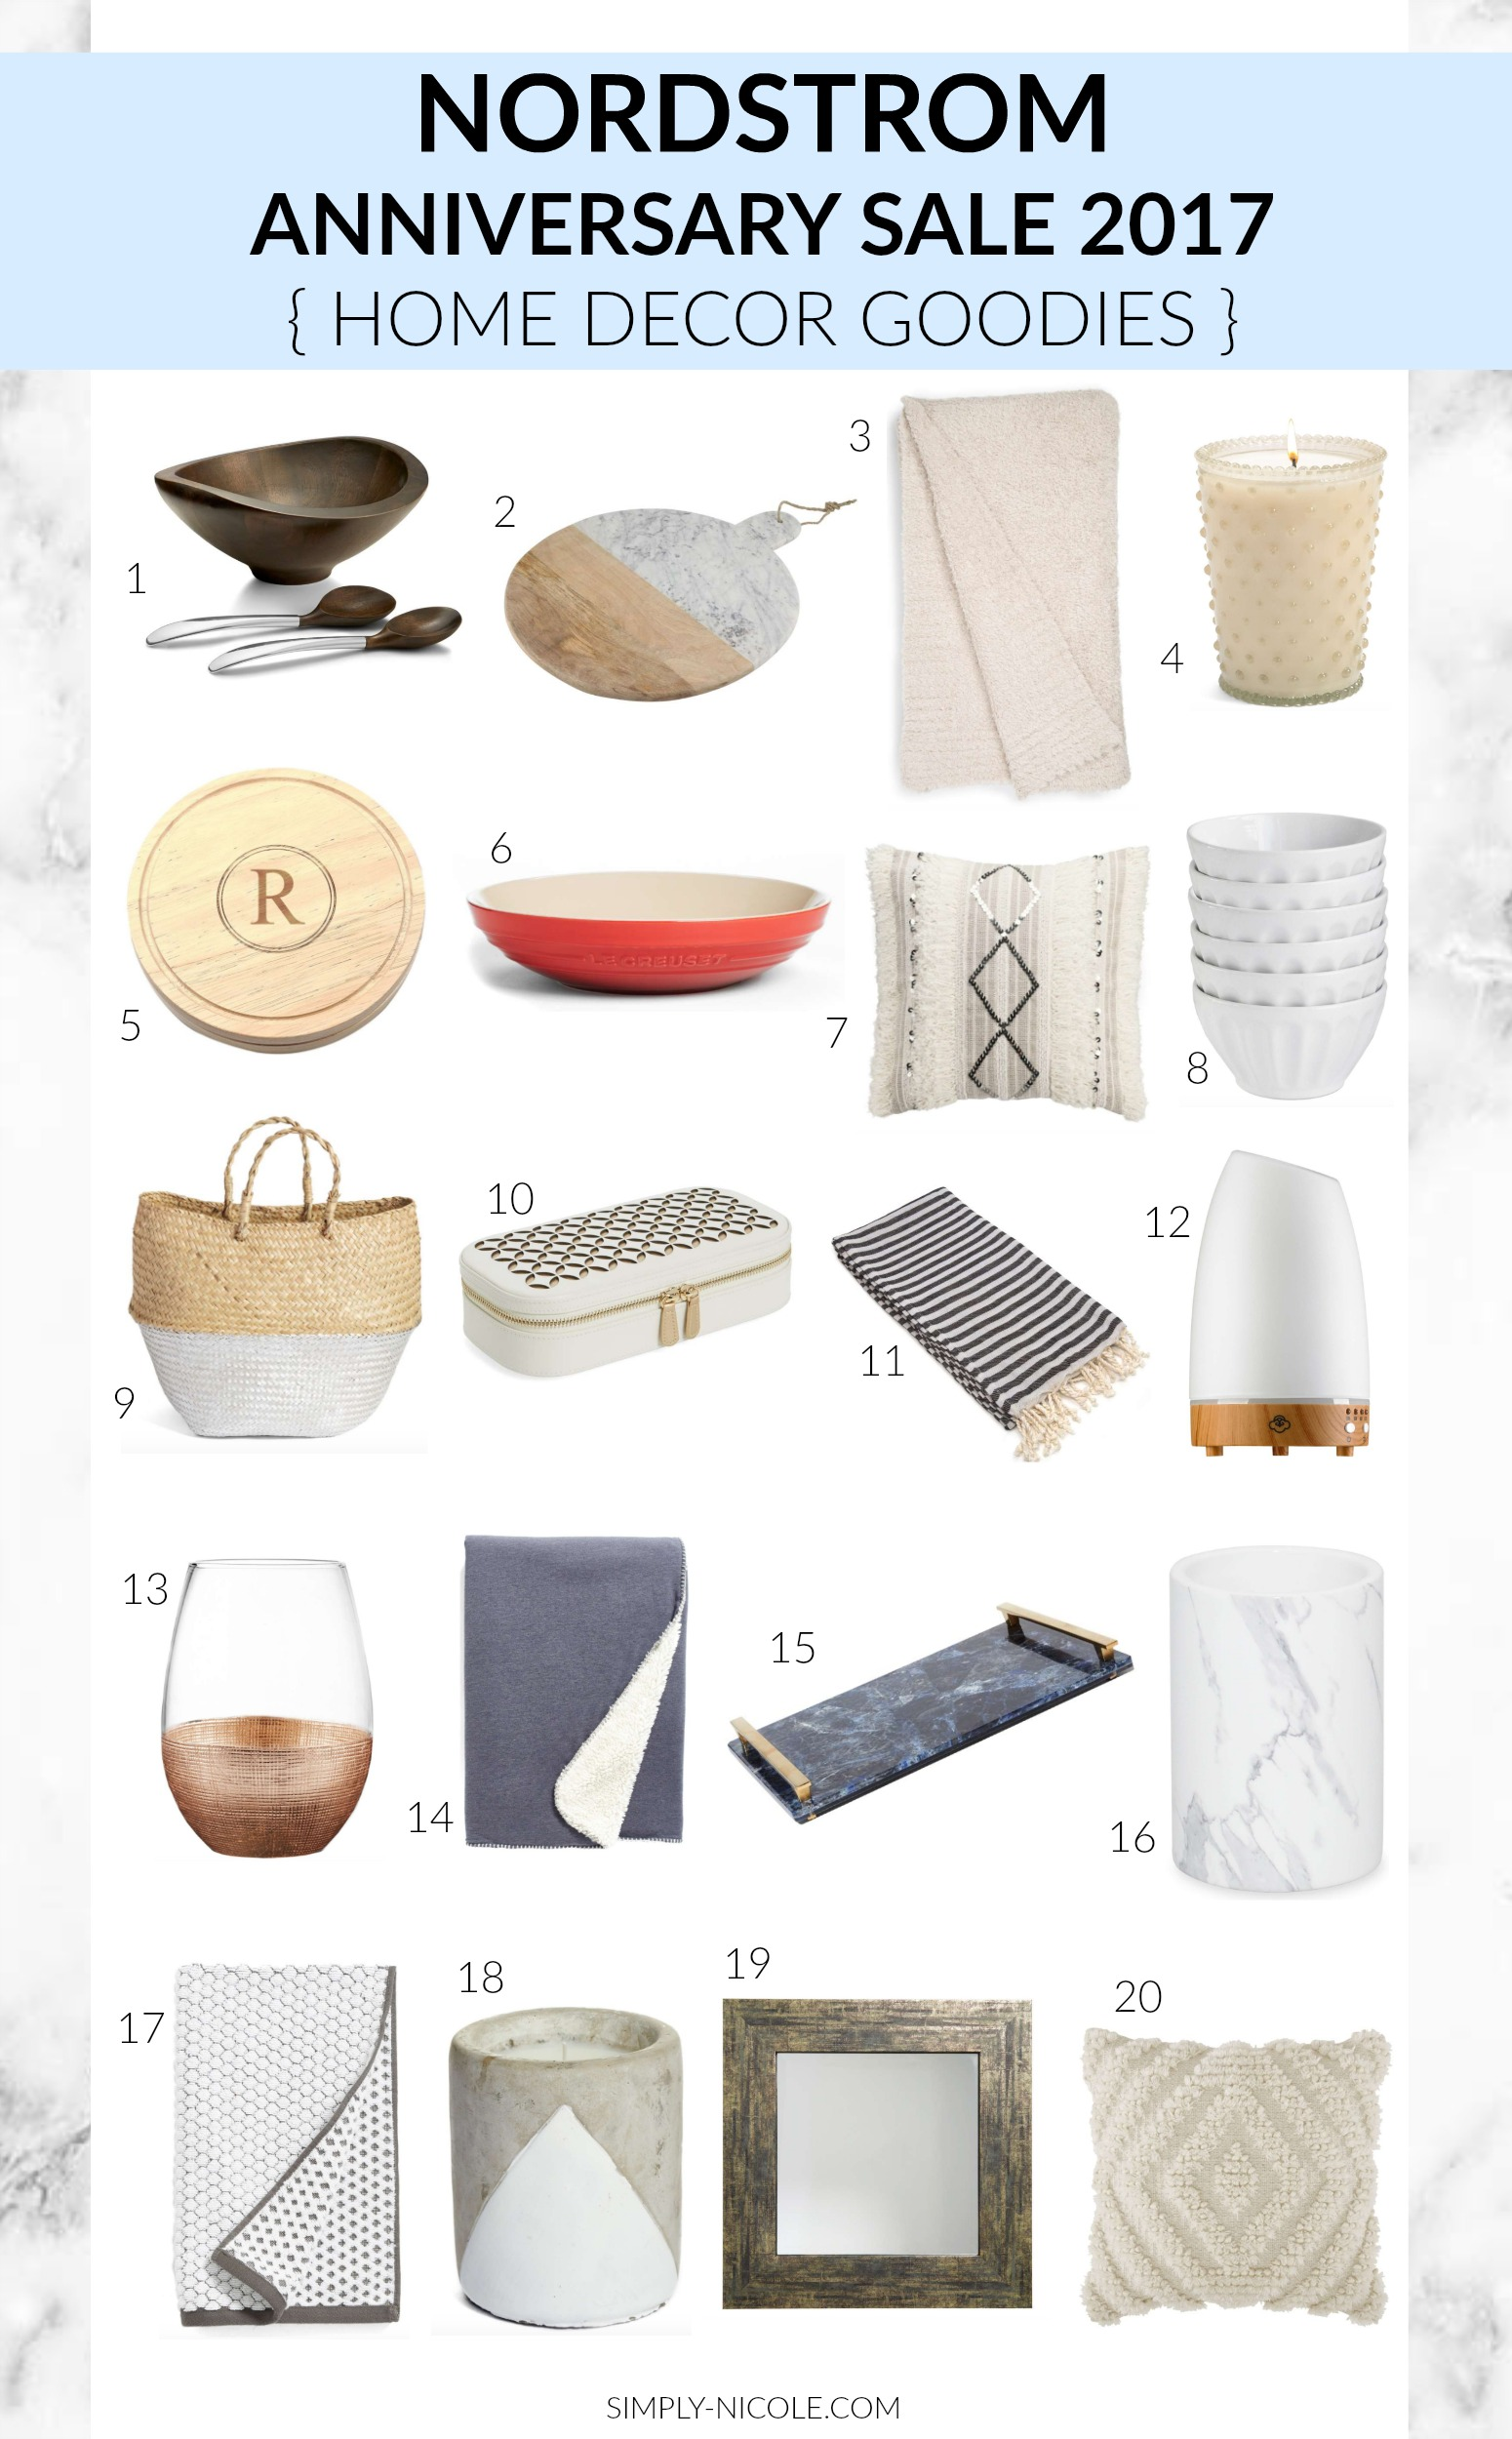 Nordstrom Anniversary Sale Home Decor Favorites